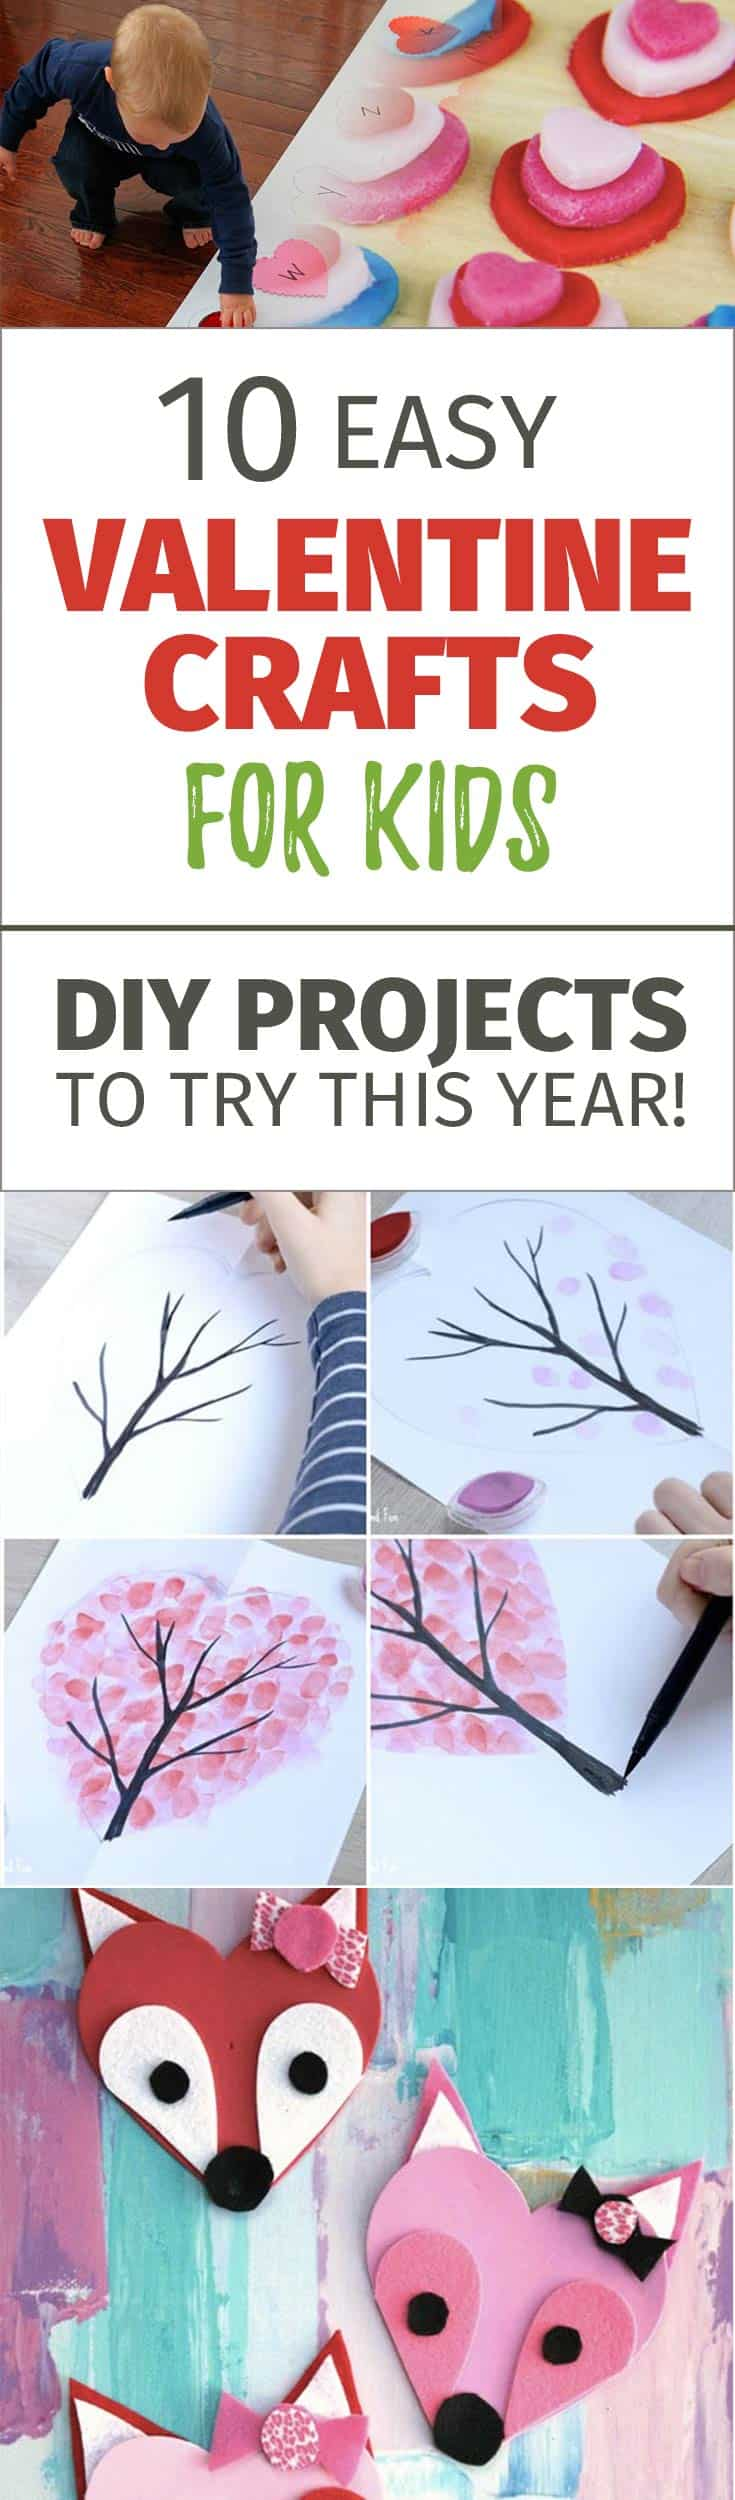 Check this collection of adorable Valentines Day Crafts for Kids and DIY them with your children! I found some for toddlers, for preschoolers and even for teens. Valentine Crafts for kids are a great idea to spend quality time with your children and teach them to have meaningful celebrations.